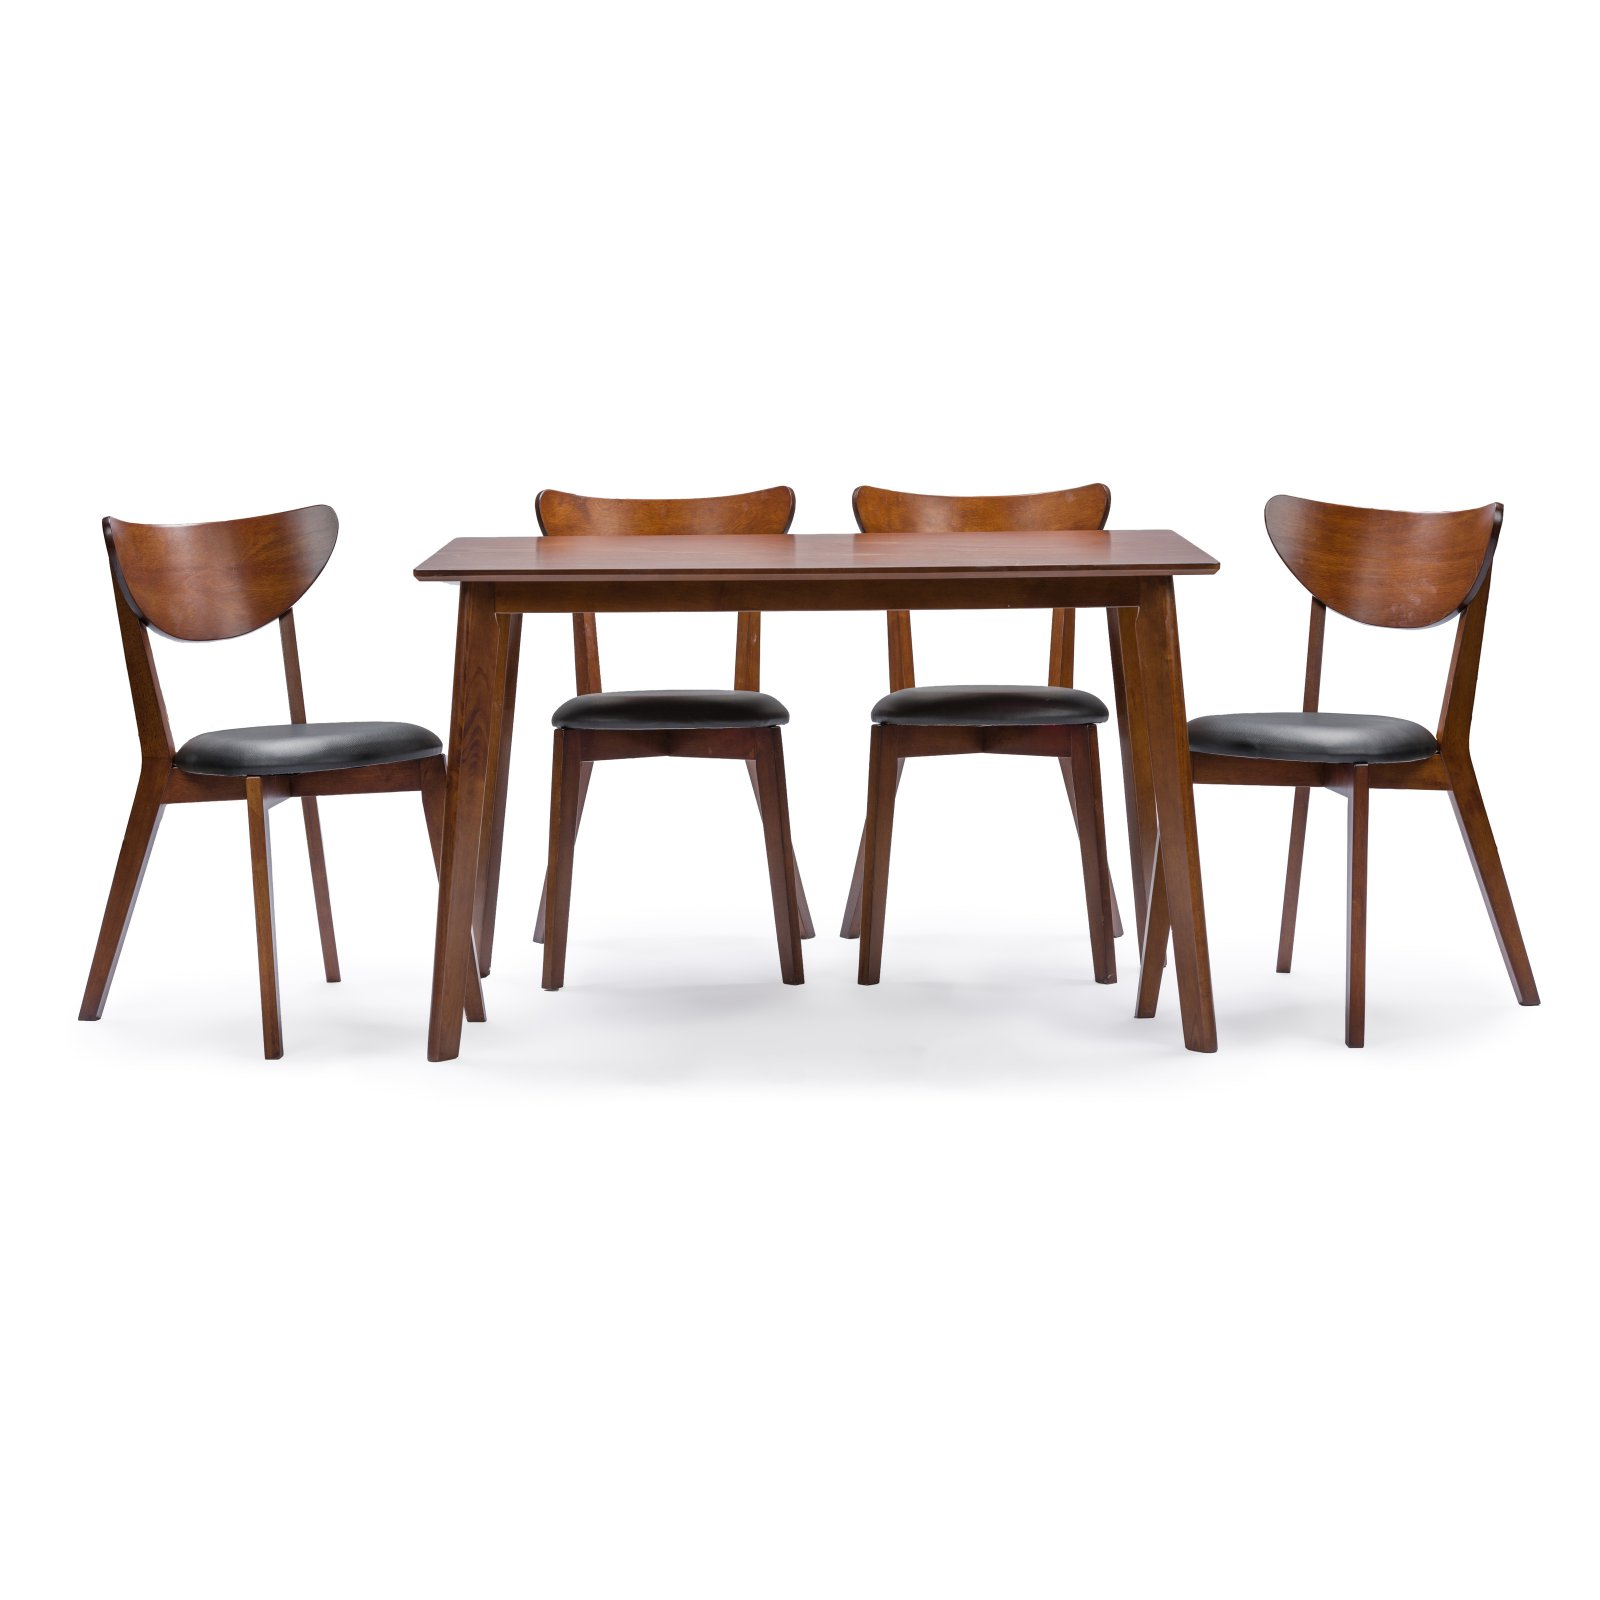 Baxton Studio Sumner Mid Century Style Walnut Brown 5 Piece Dining